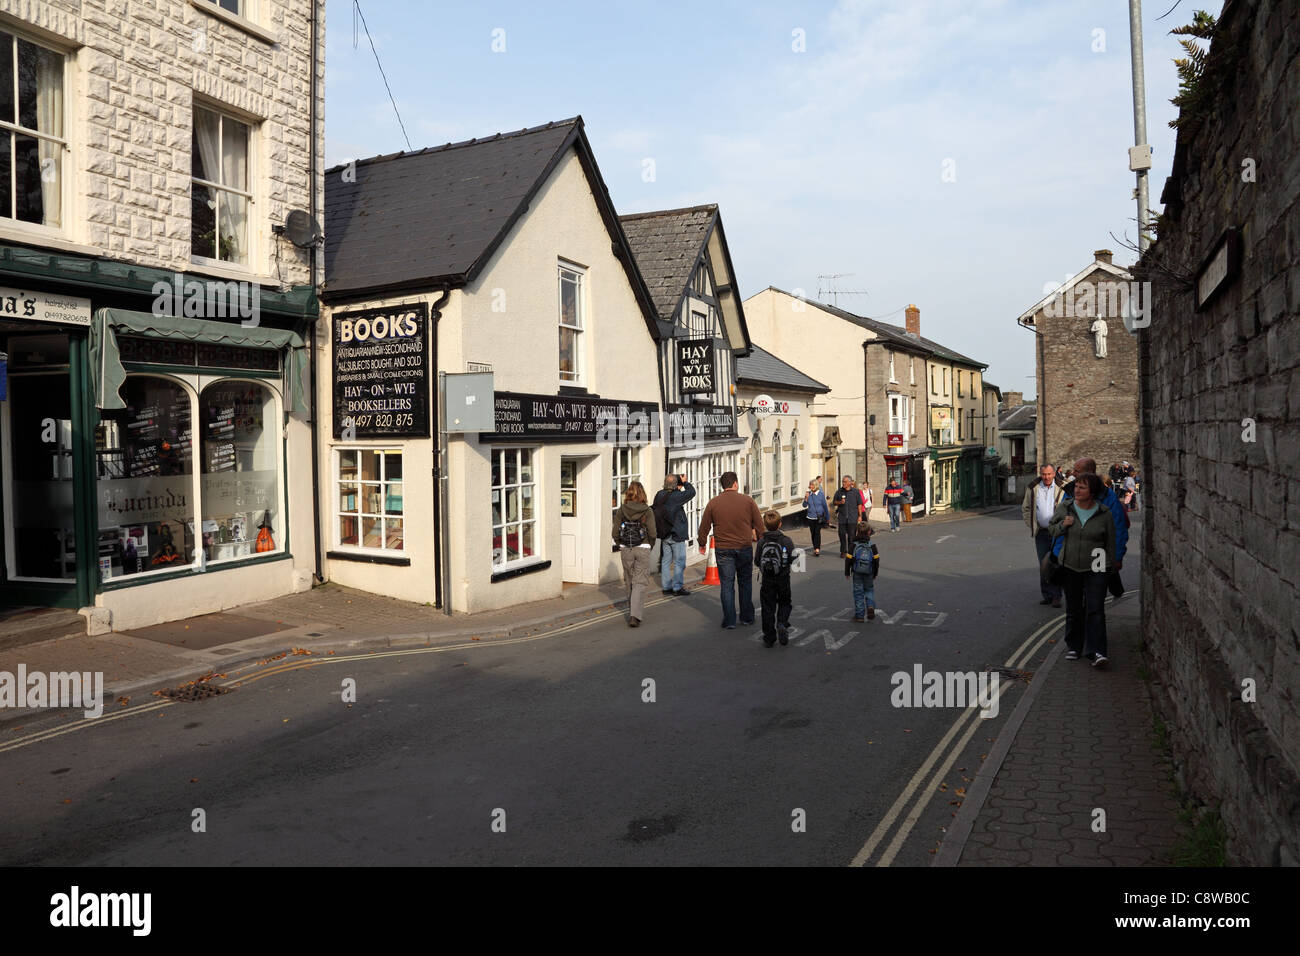 Book Sellers Hay on Wye Powys Wales UK Stock Photo: 39895420